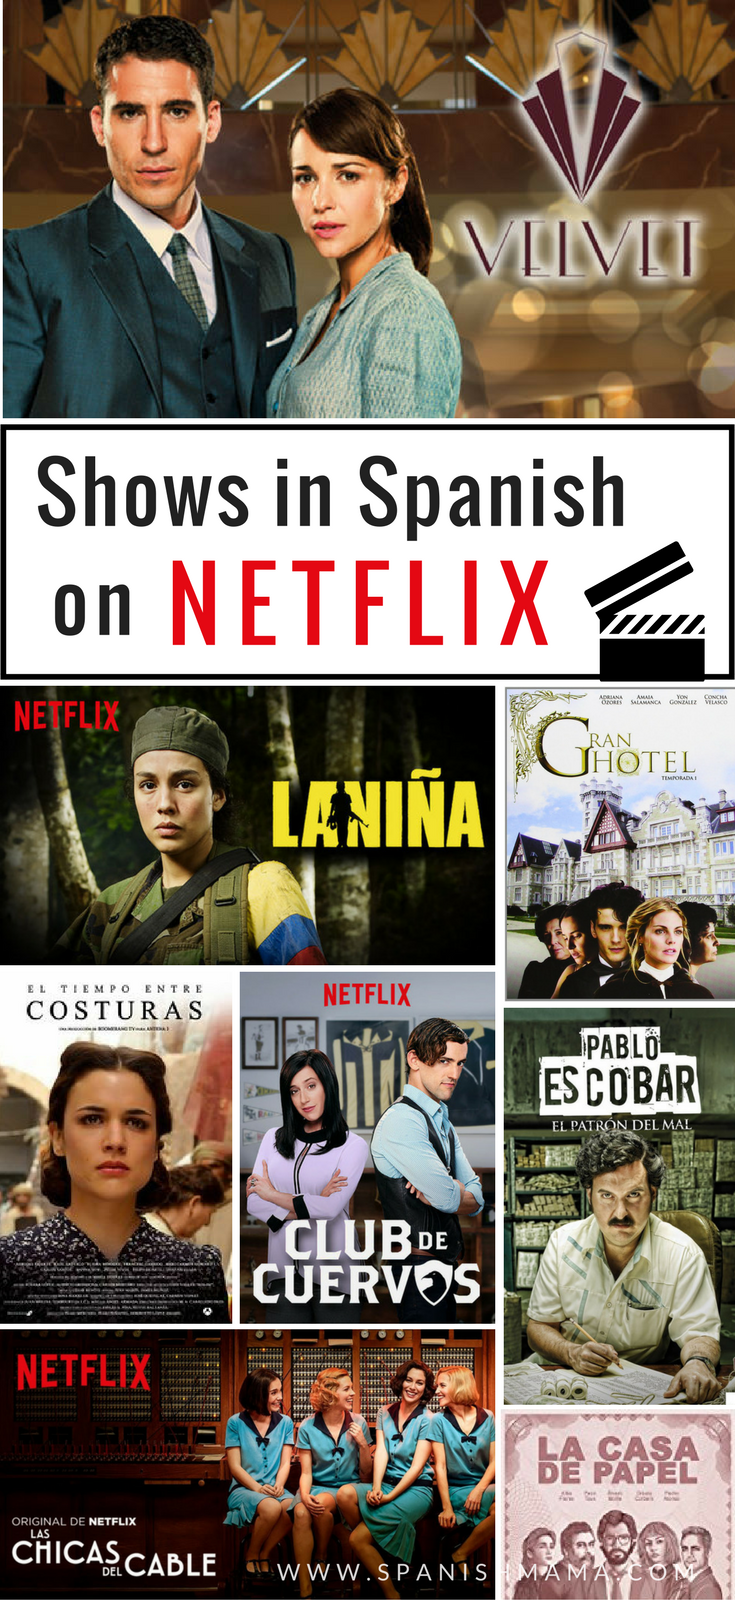 2019 Guide to the Best Spanish Shows on Netflix | Best of Spanish